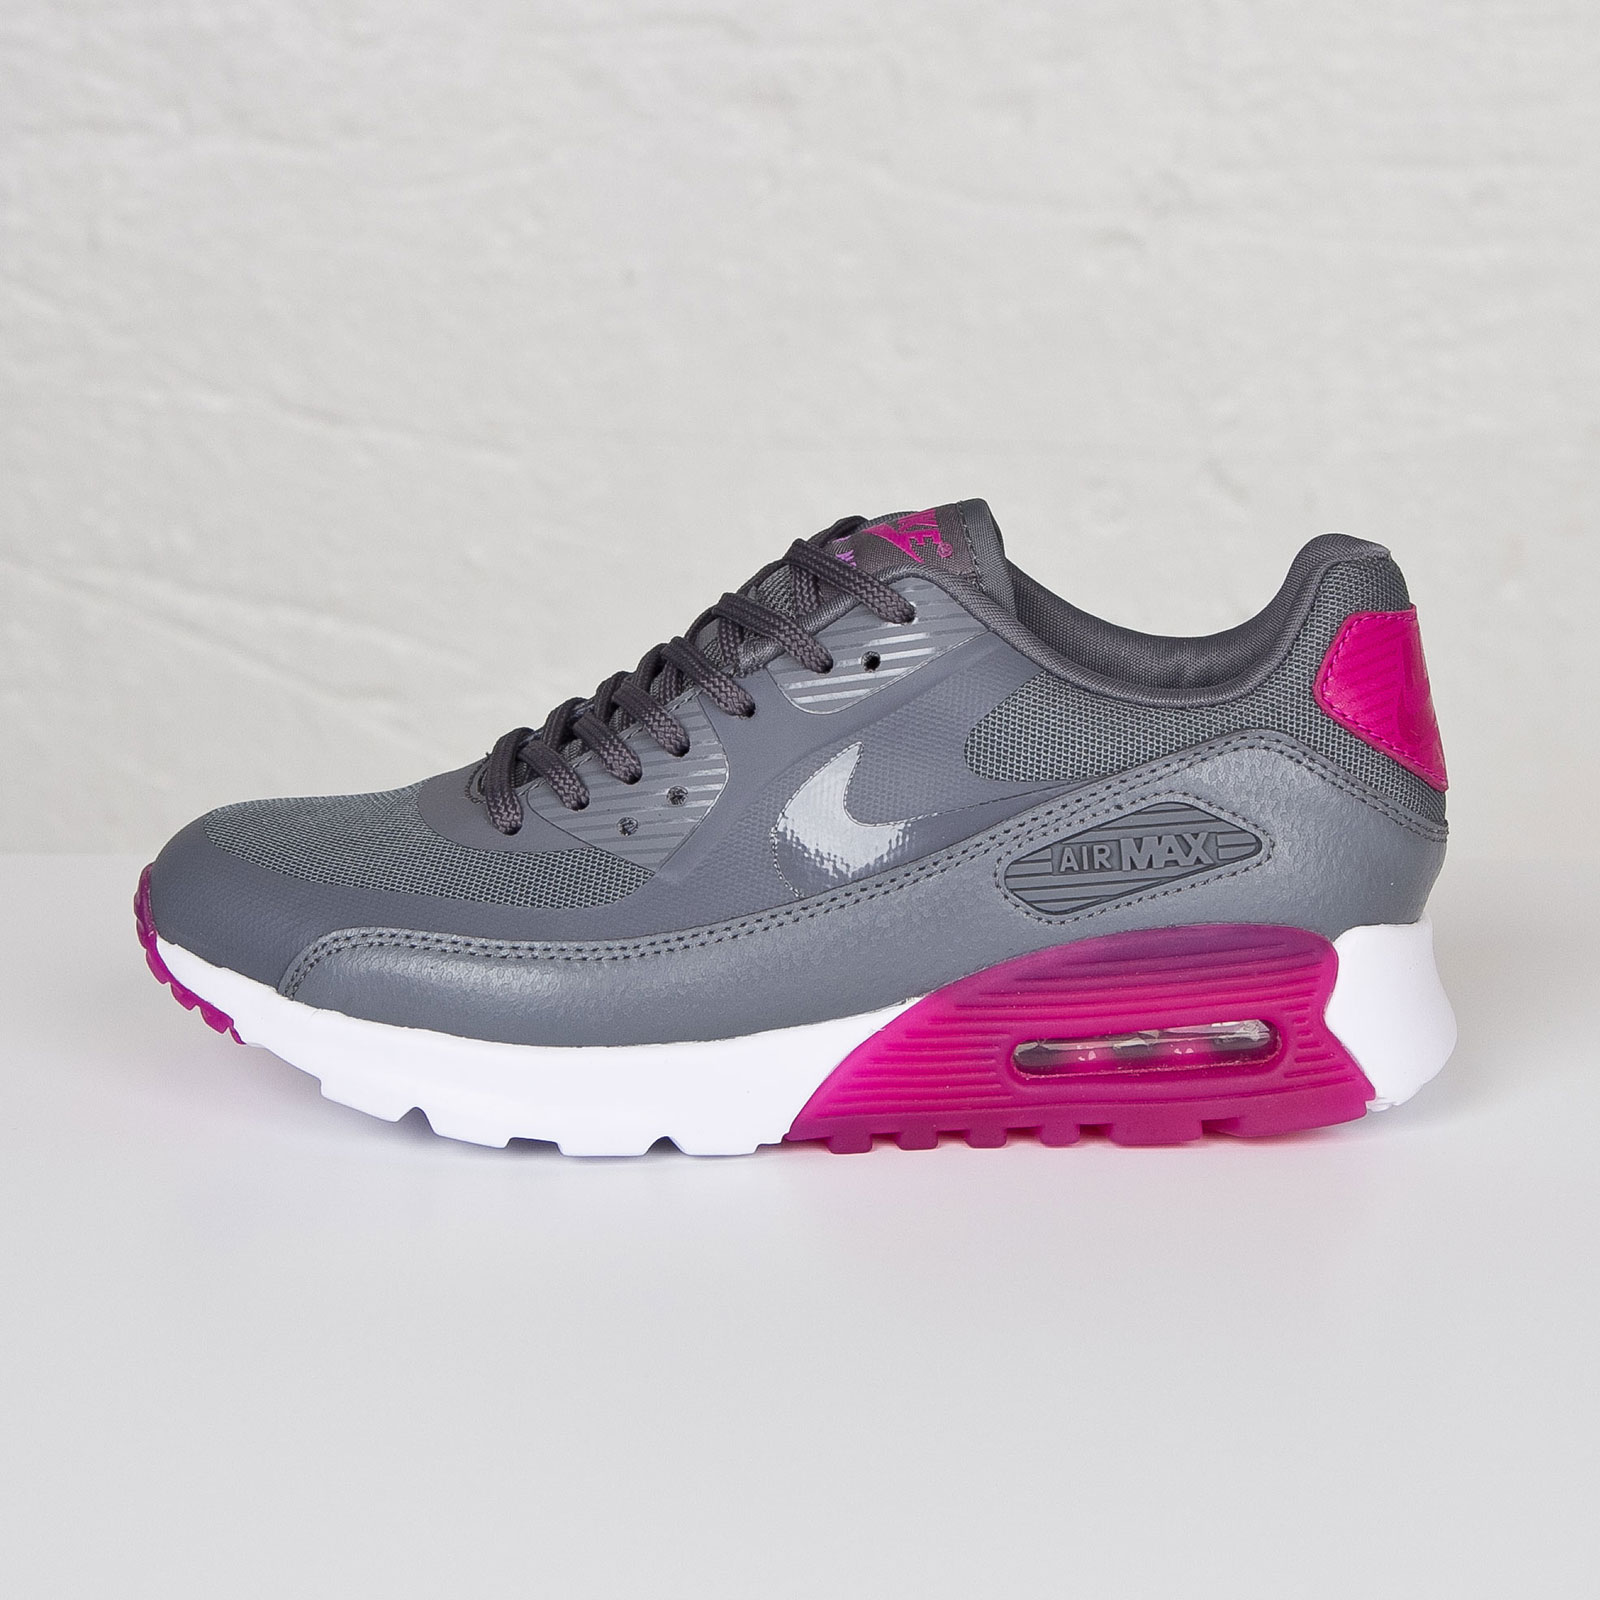 nike women 39 s air max 90 ultra essential cool grey fuchsia flash air 23 air jordan. Black Bedroom Furniture Sets. Home Design Ideas